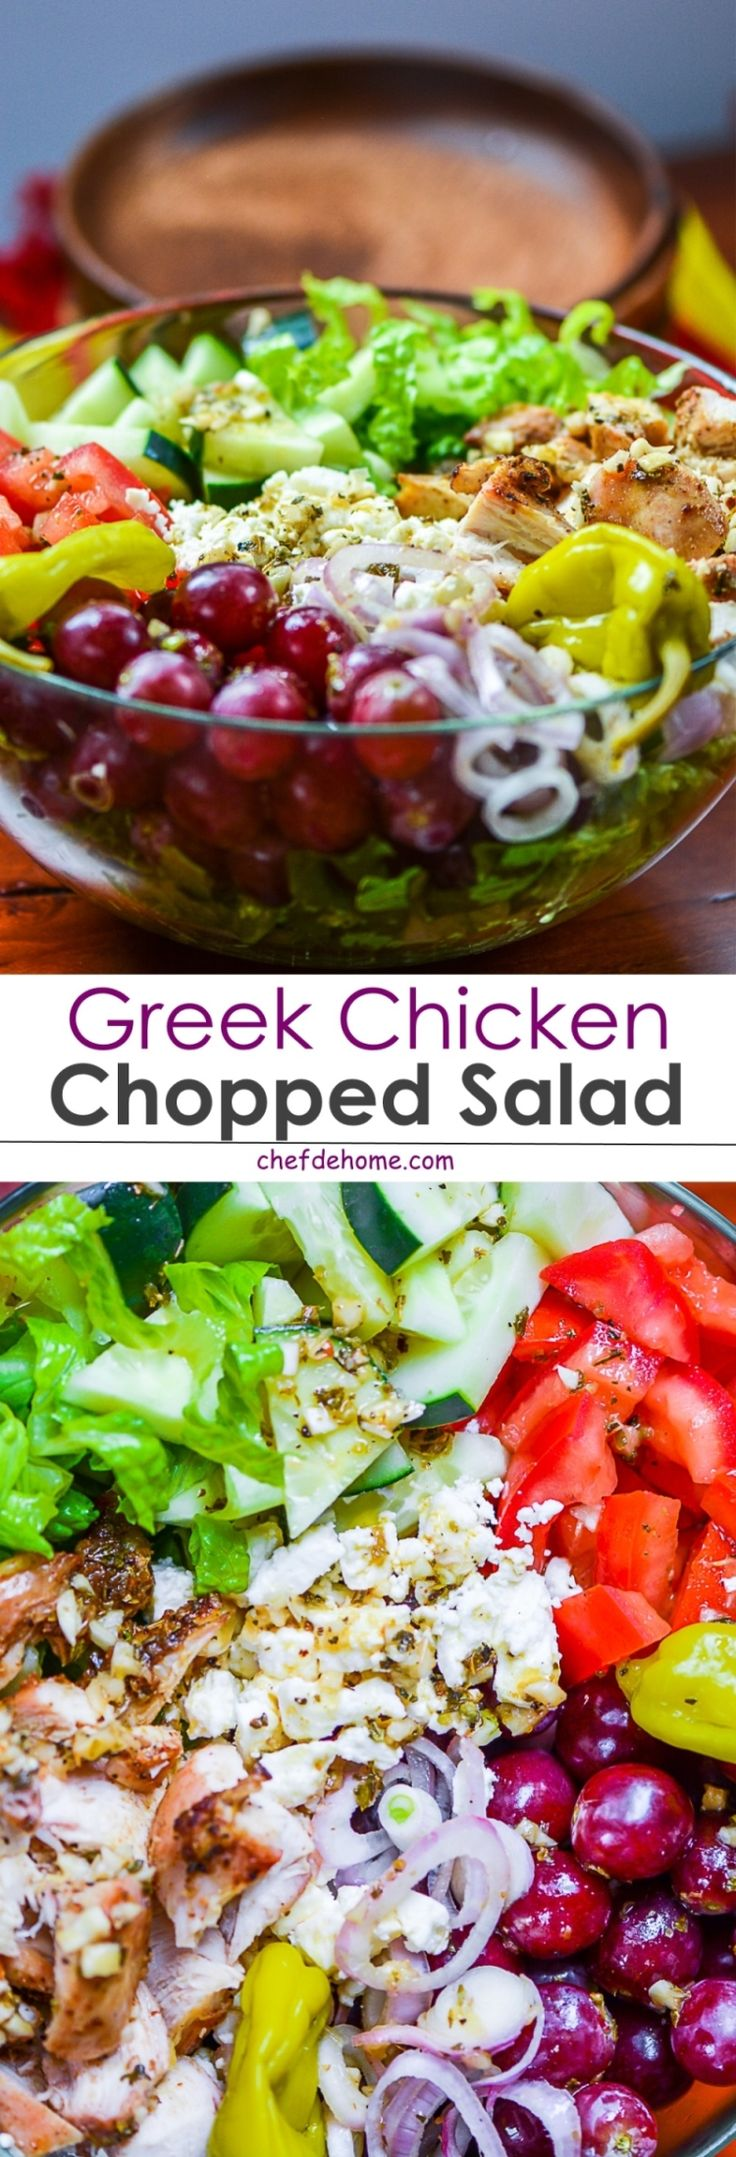 Greek Chicken Chopped Salad - A healthy carb-free salad with delicious greek chicken, veggies, sweet grapes and feta cheese! yumm!